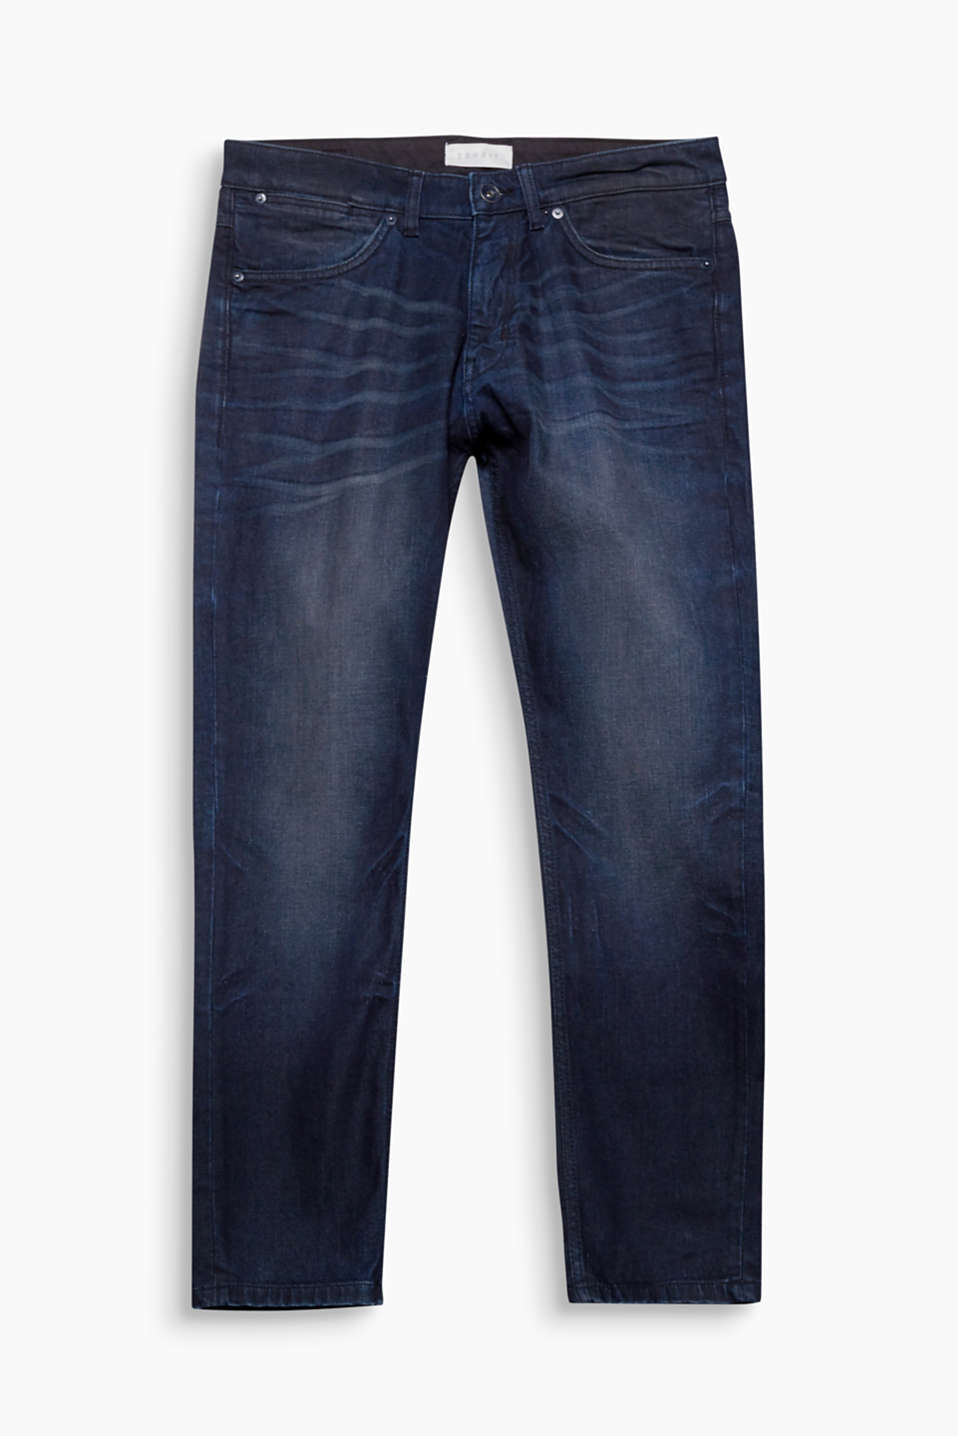 Used and Crinkled! Markante Effekte machen diese locker geschnitte Jeans zum Denim-Favoriten.